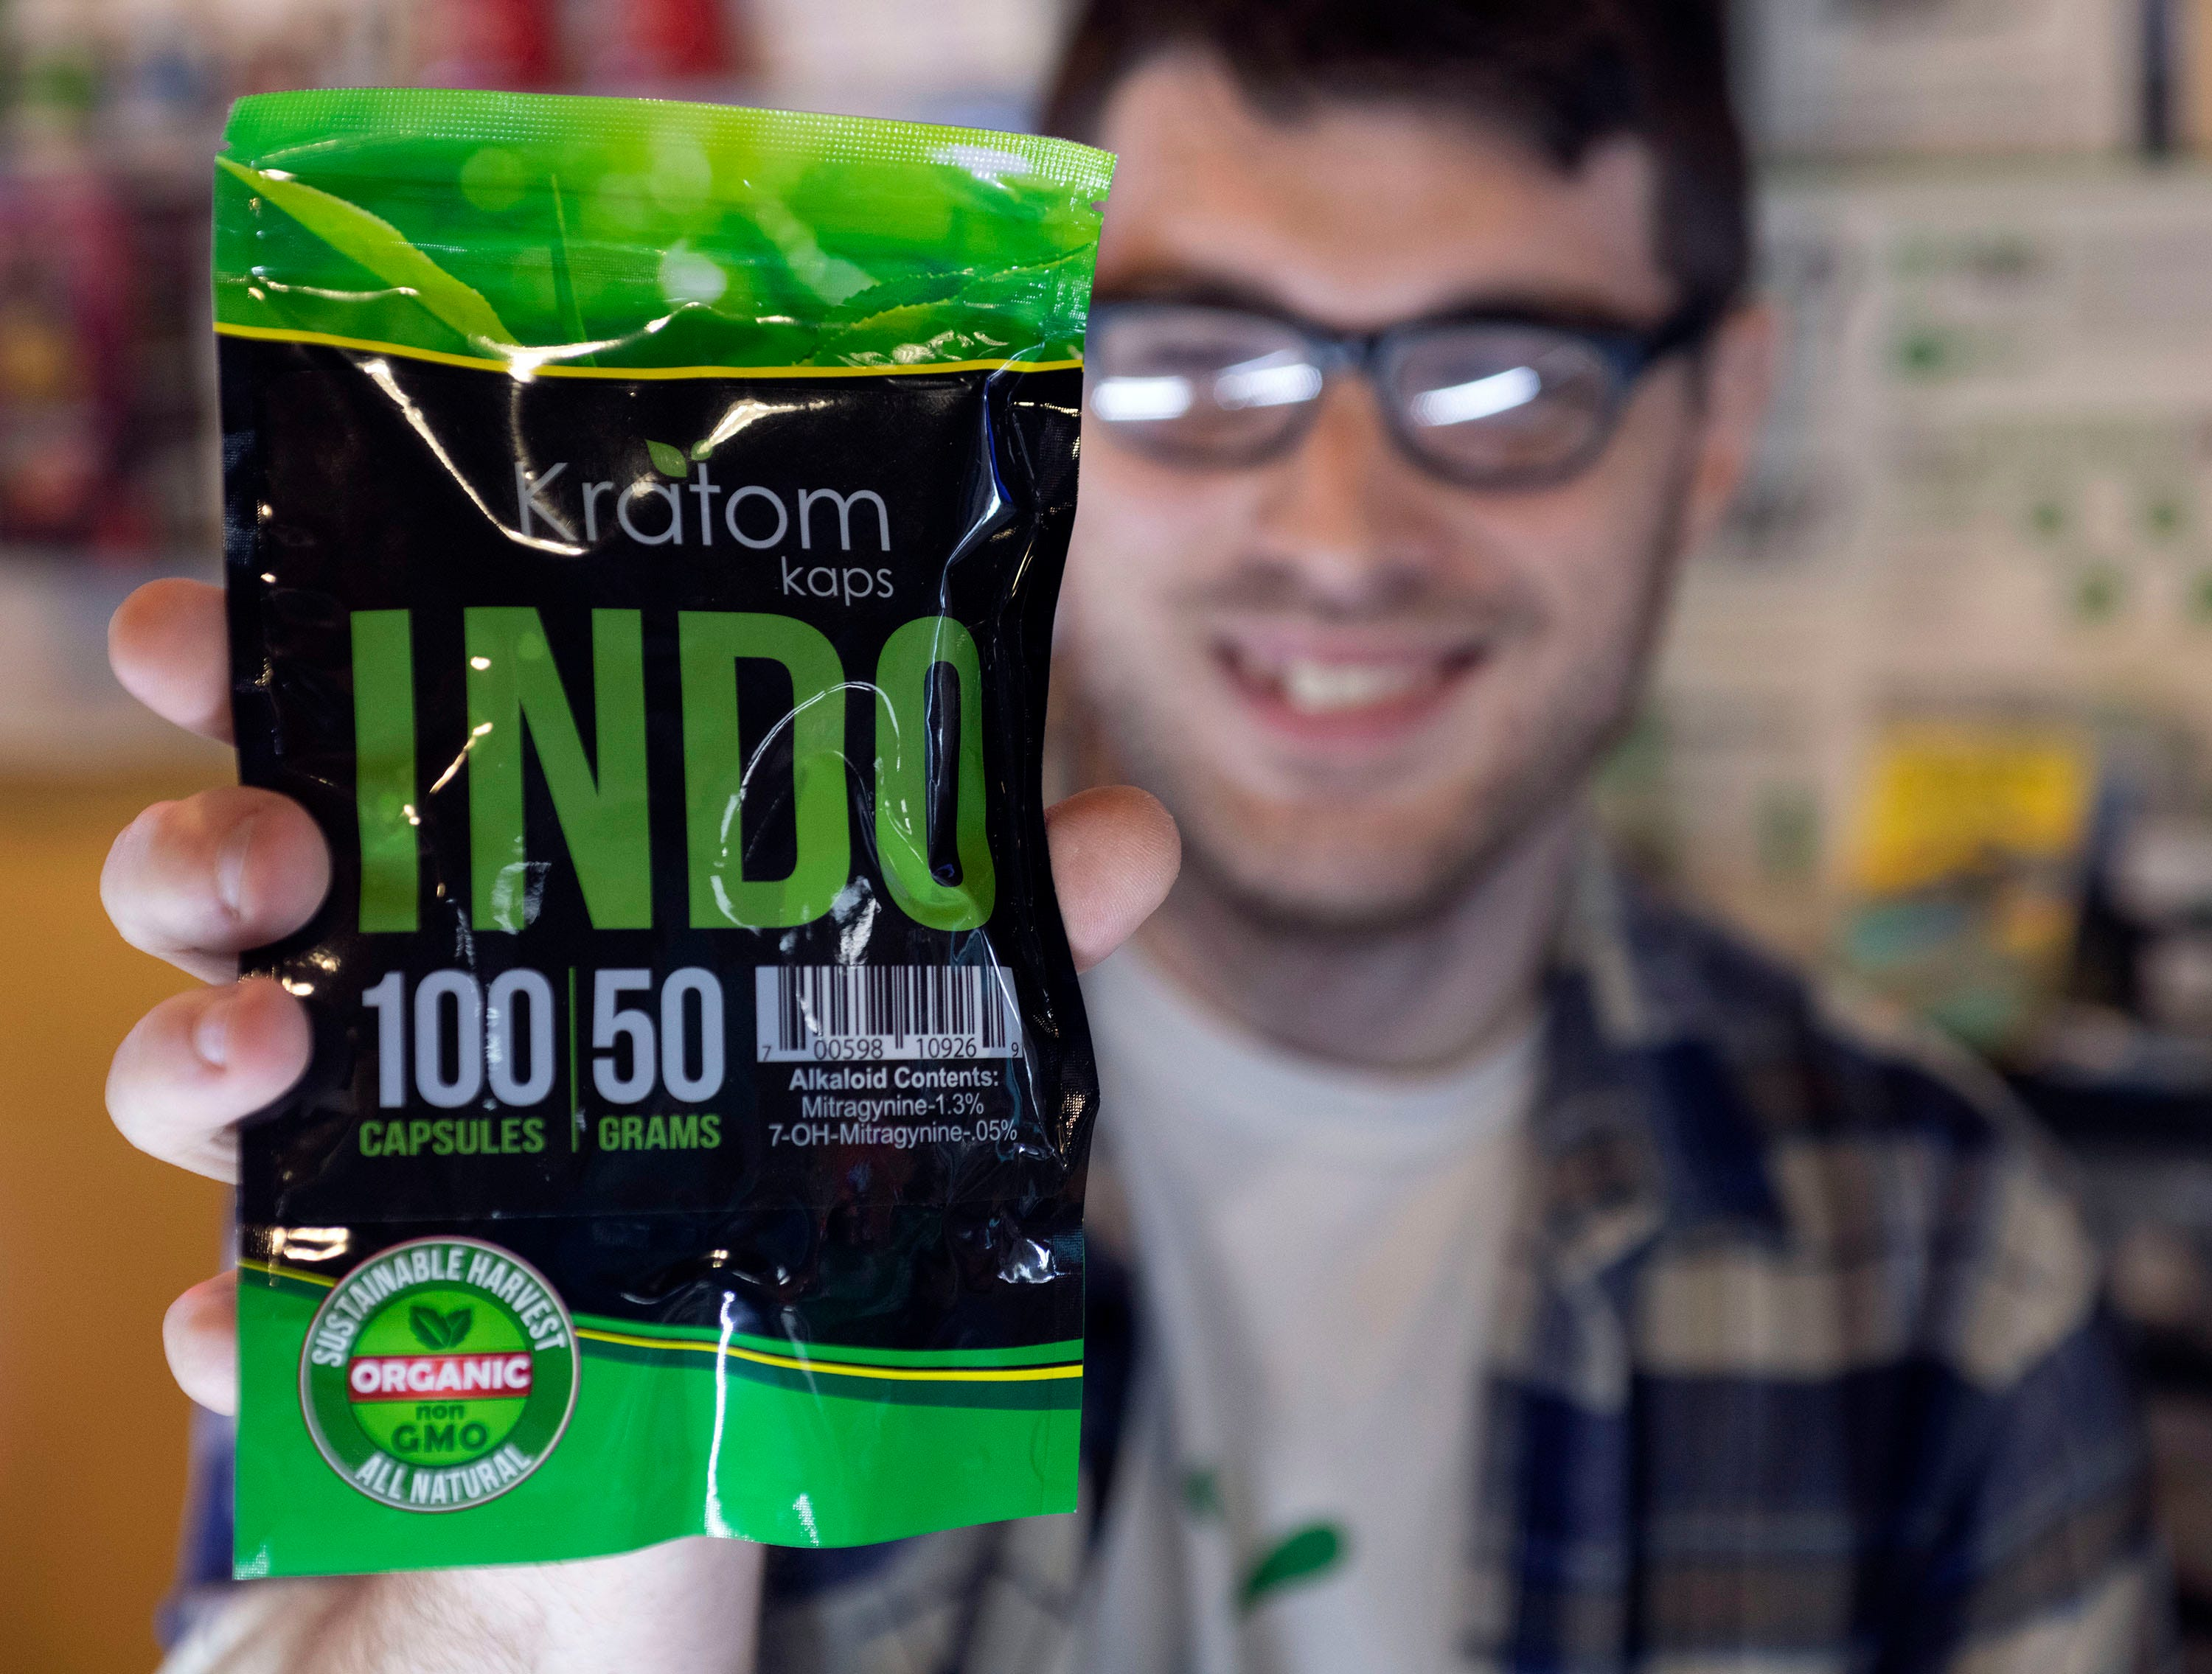 Kratom is widely available in gas stations, despite experts' warnings of addiction, risks